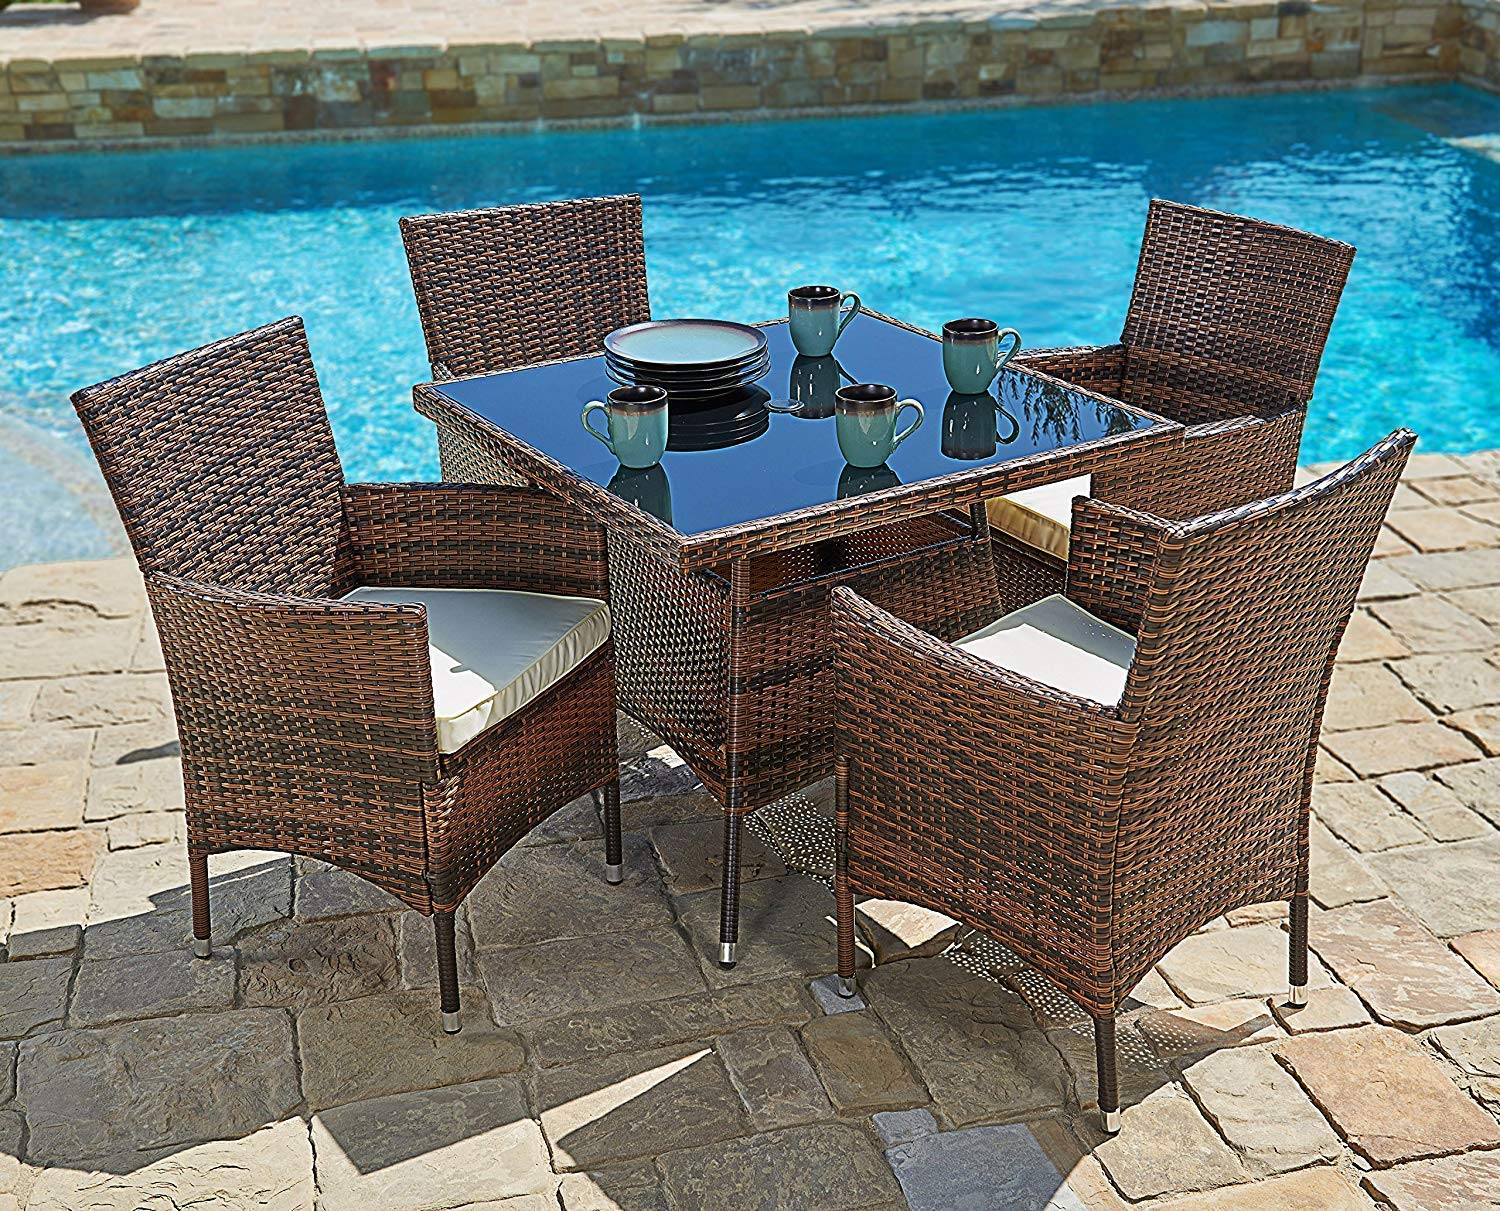 suncrown outdoor furniture all weather square wicker dining table and chairs 5 piece set washable cushions patio backyard porch garden